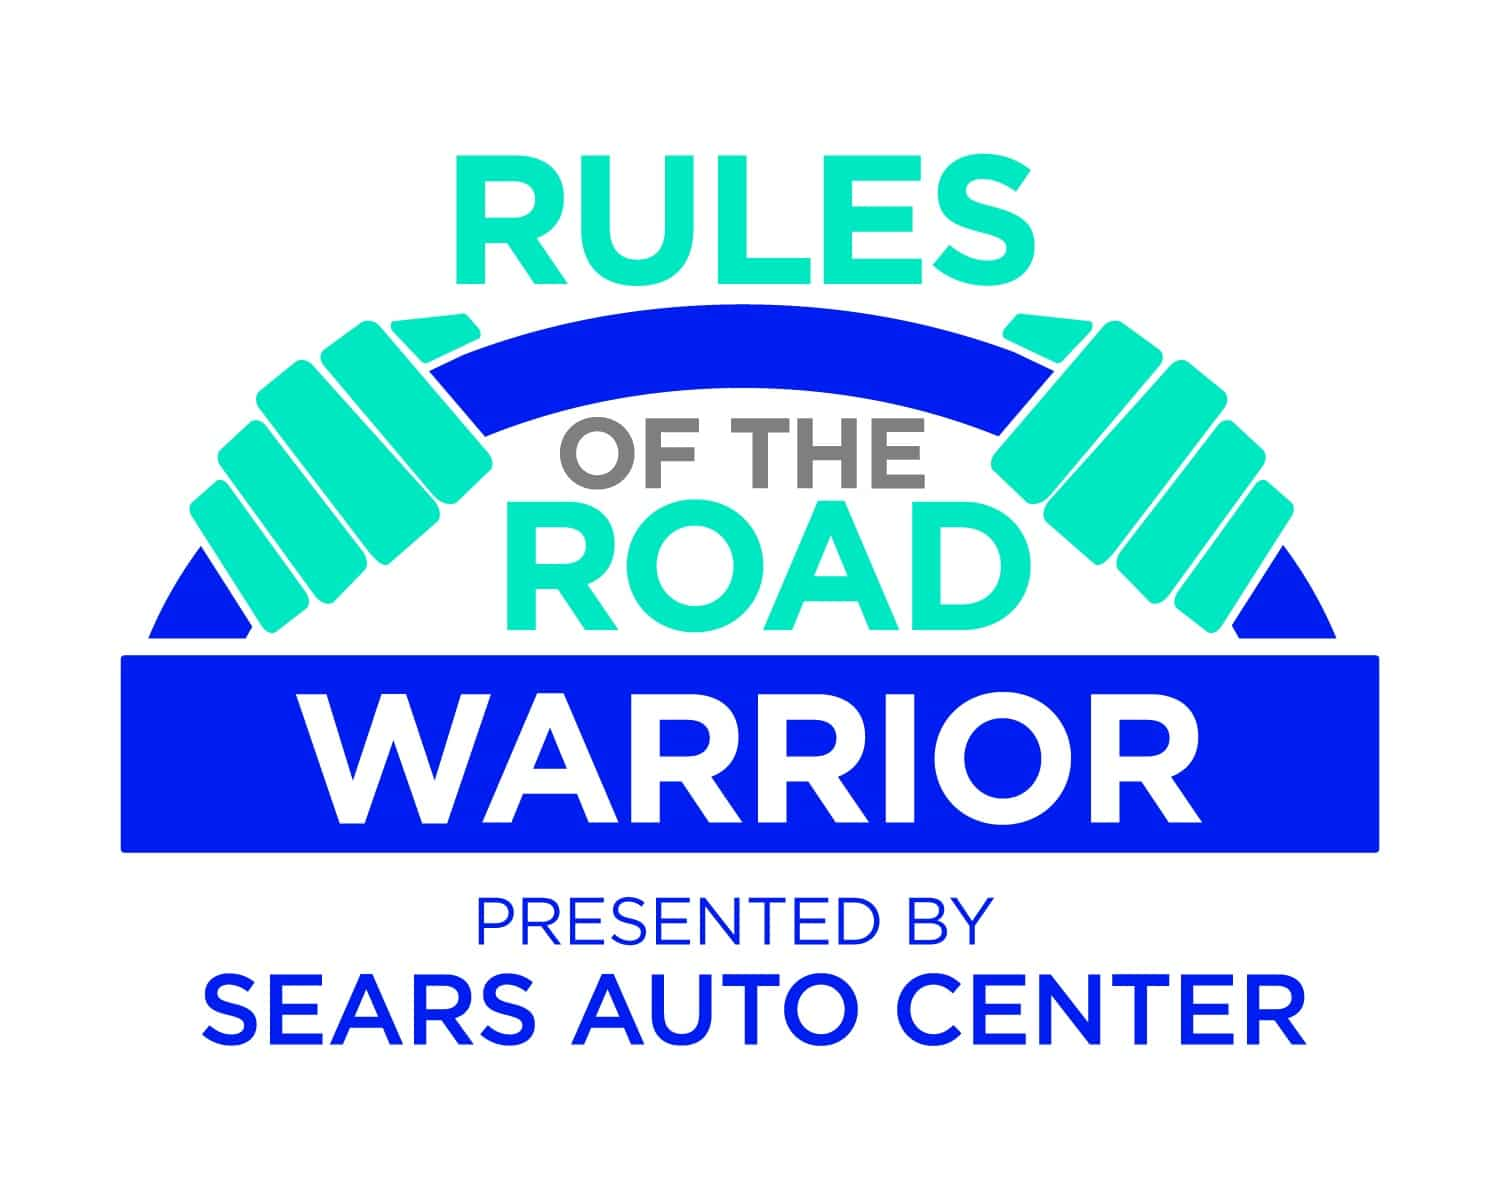 Rules of the Road Warriors